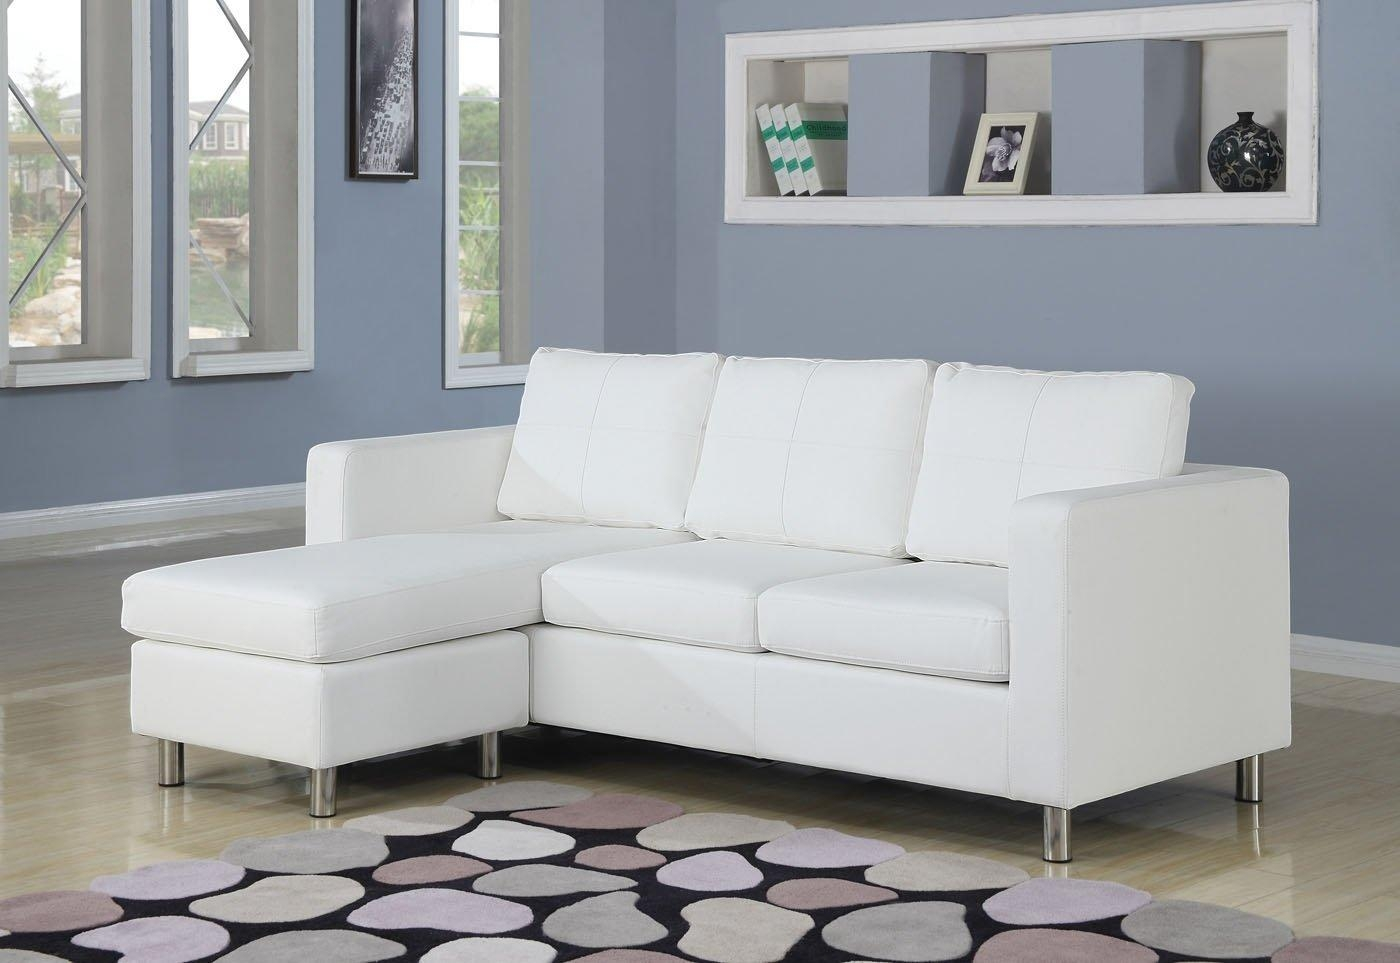 Ideal Small Sectional Sofa — Interior Home Design Regarding Small Scale Sectional Sofas (Image 6 of 20)